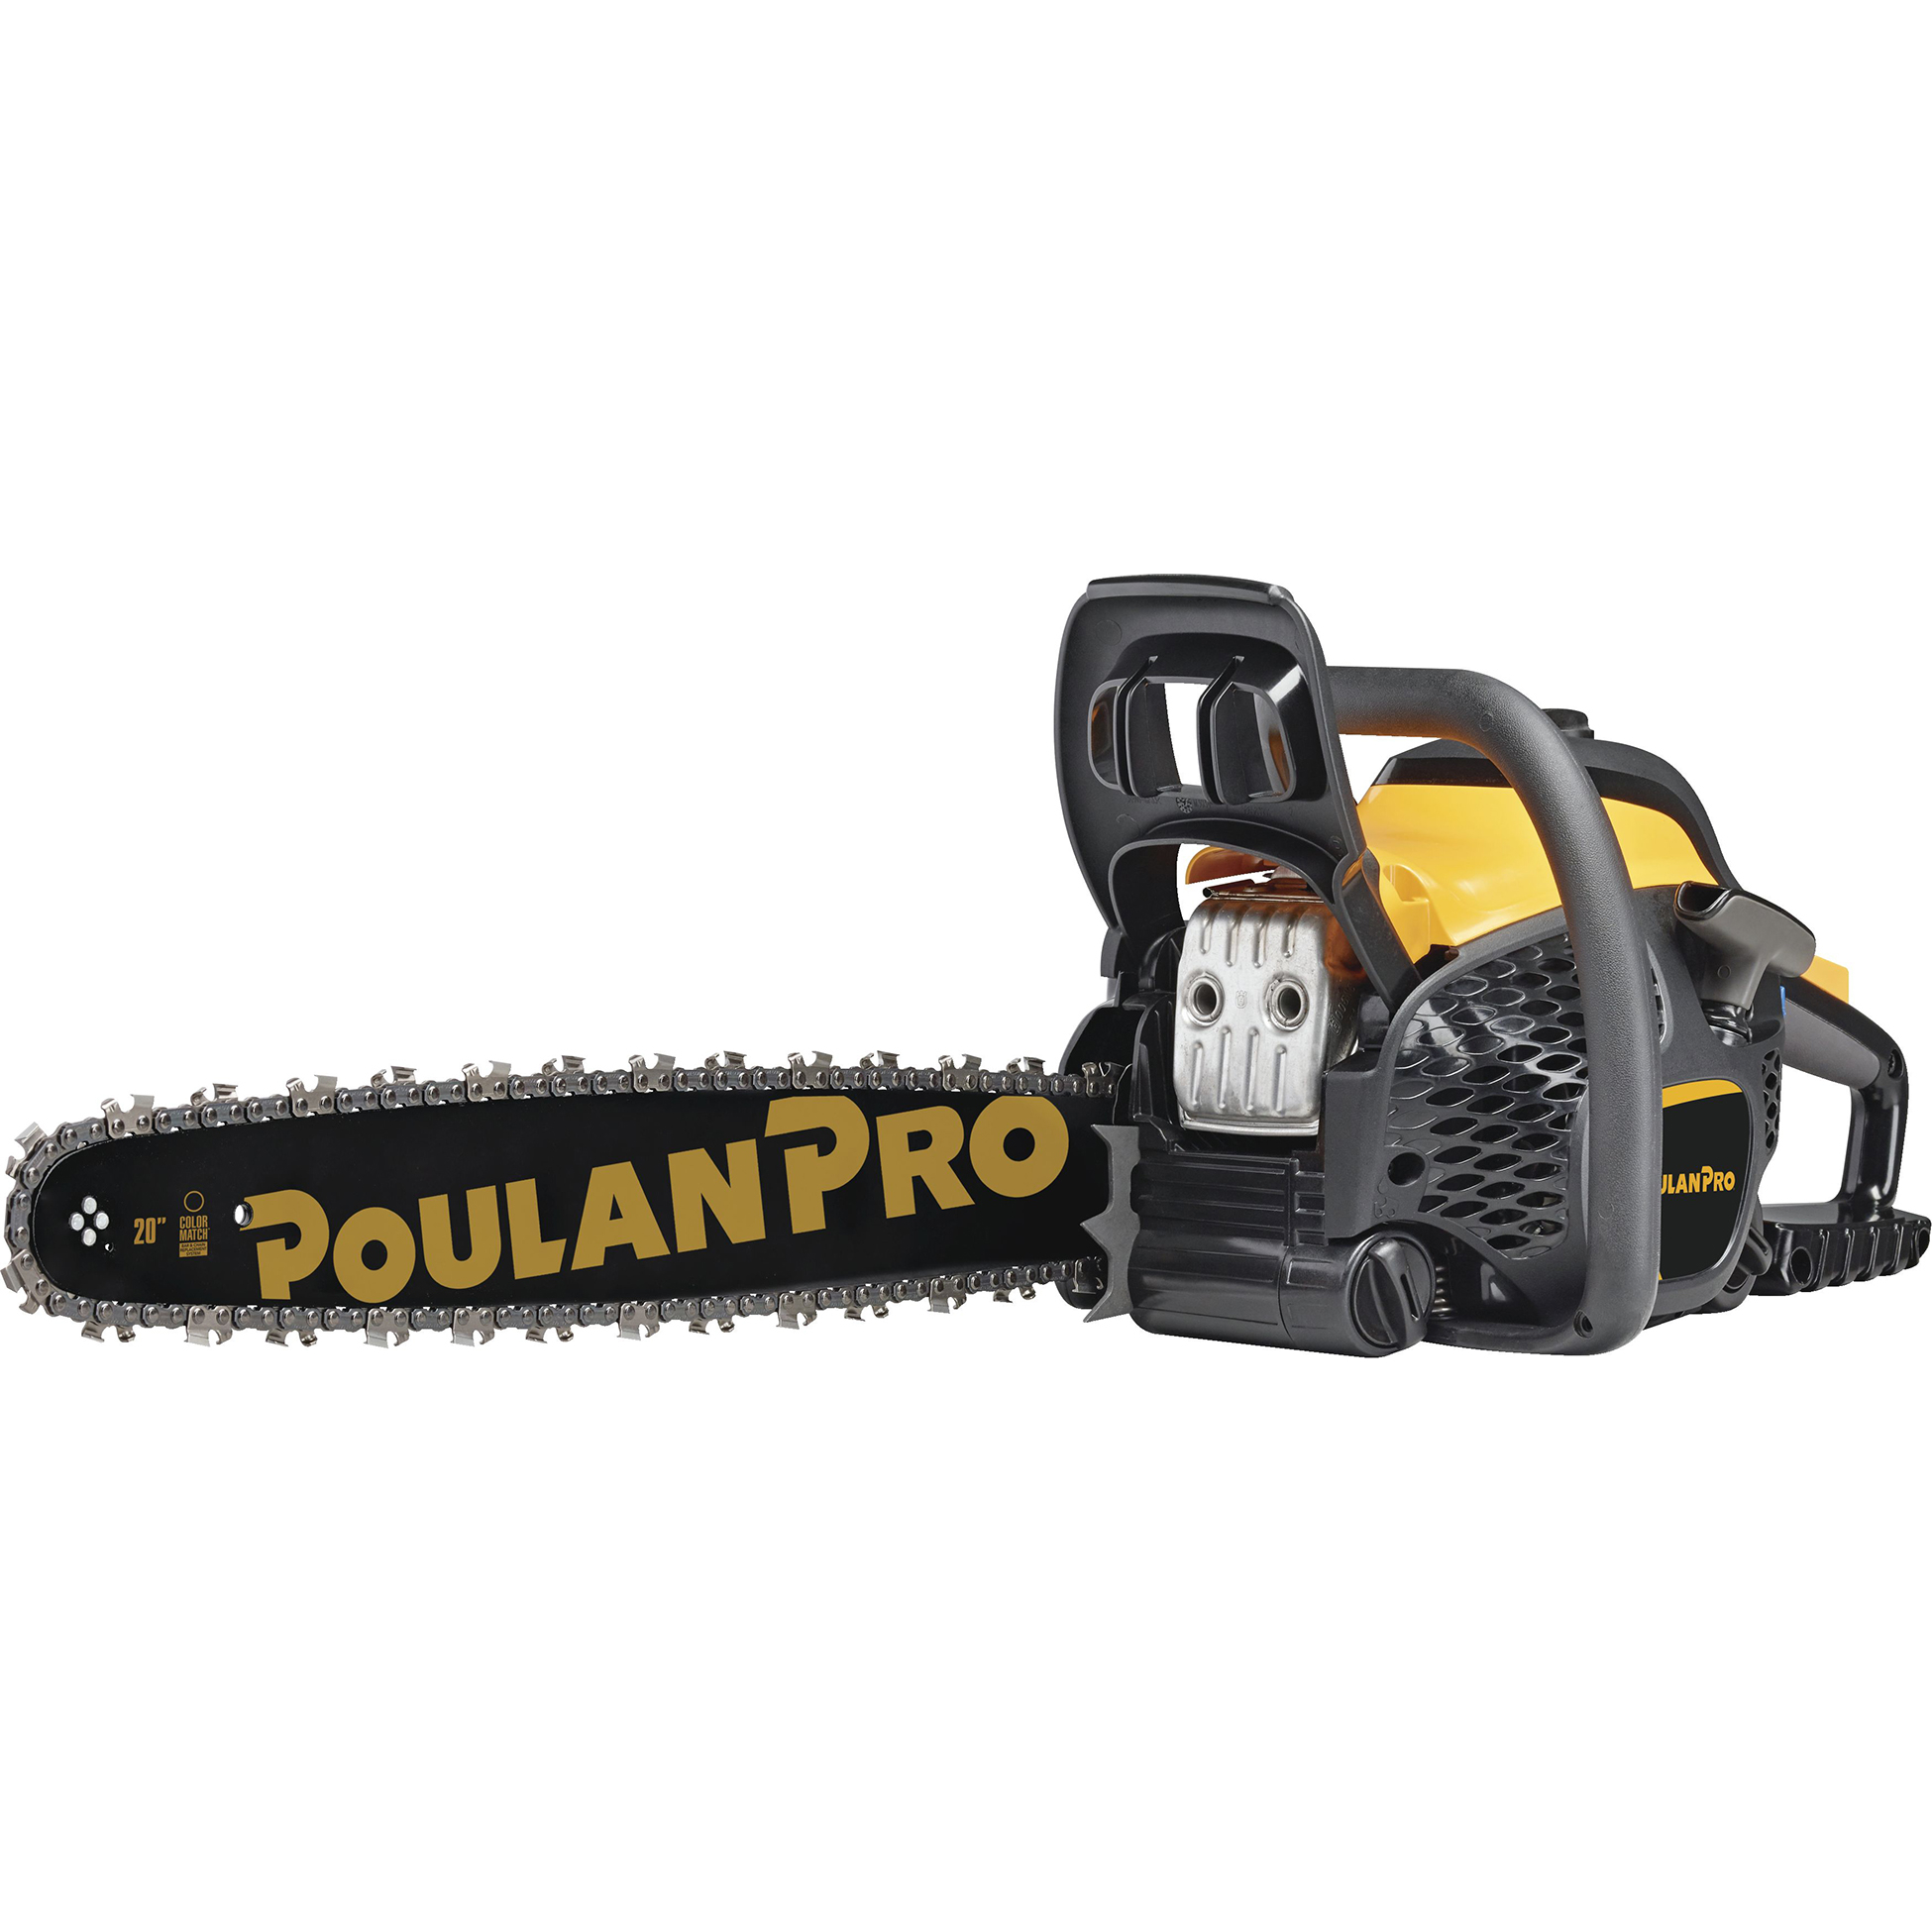 "Poulan Pro 967061501 20"" 50cc 2-Cycle Gas Chainsaw by HUSQVARNA OUTDOOR PRODUCTS"